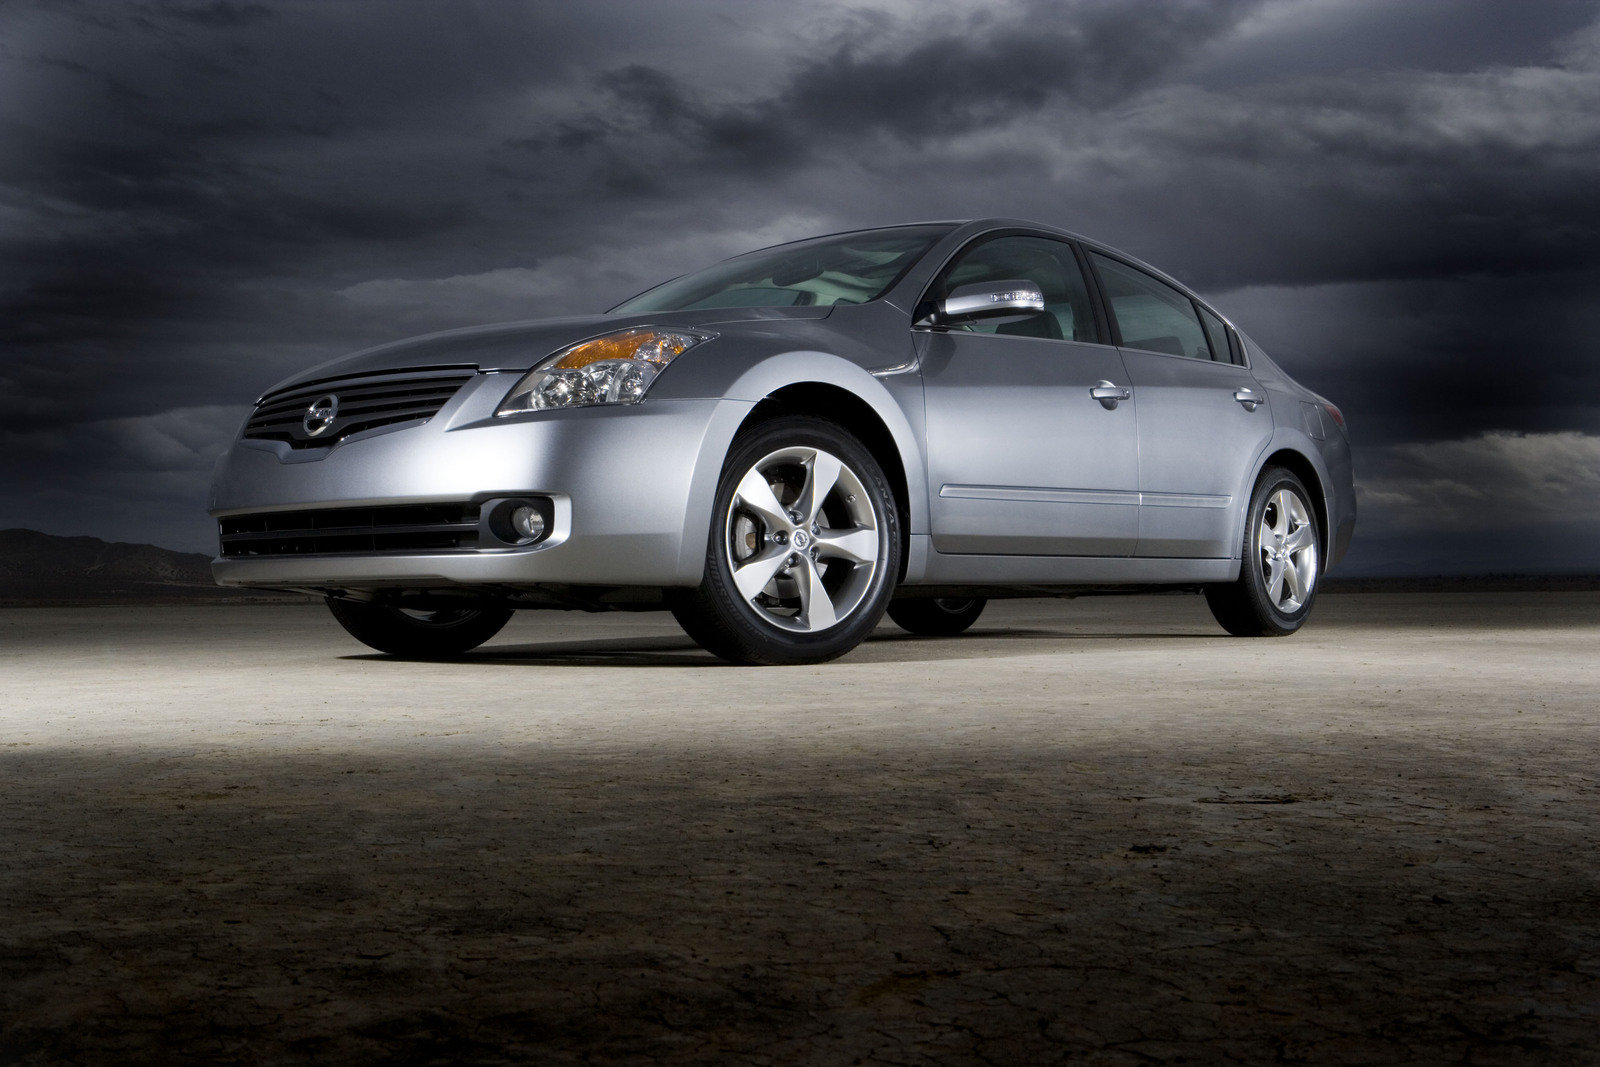 2007 nissan altima picture 55835 car review top speed. Black Bedroom Furniture Sets. Home Design Ideas